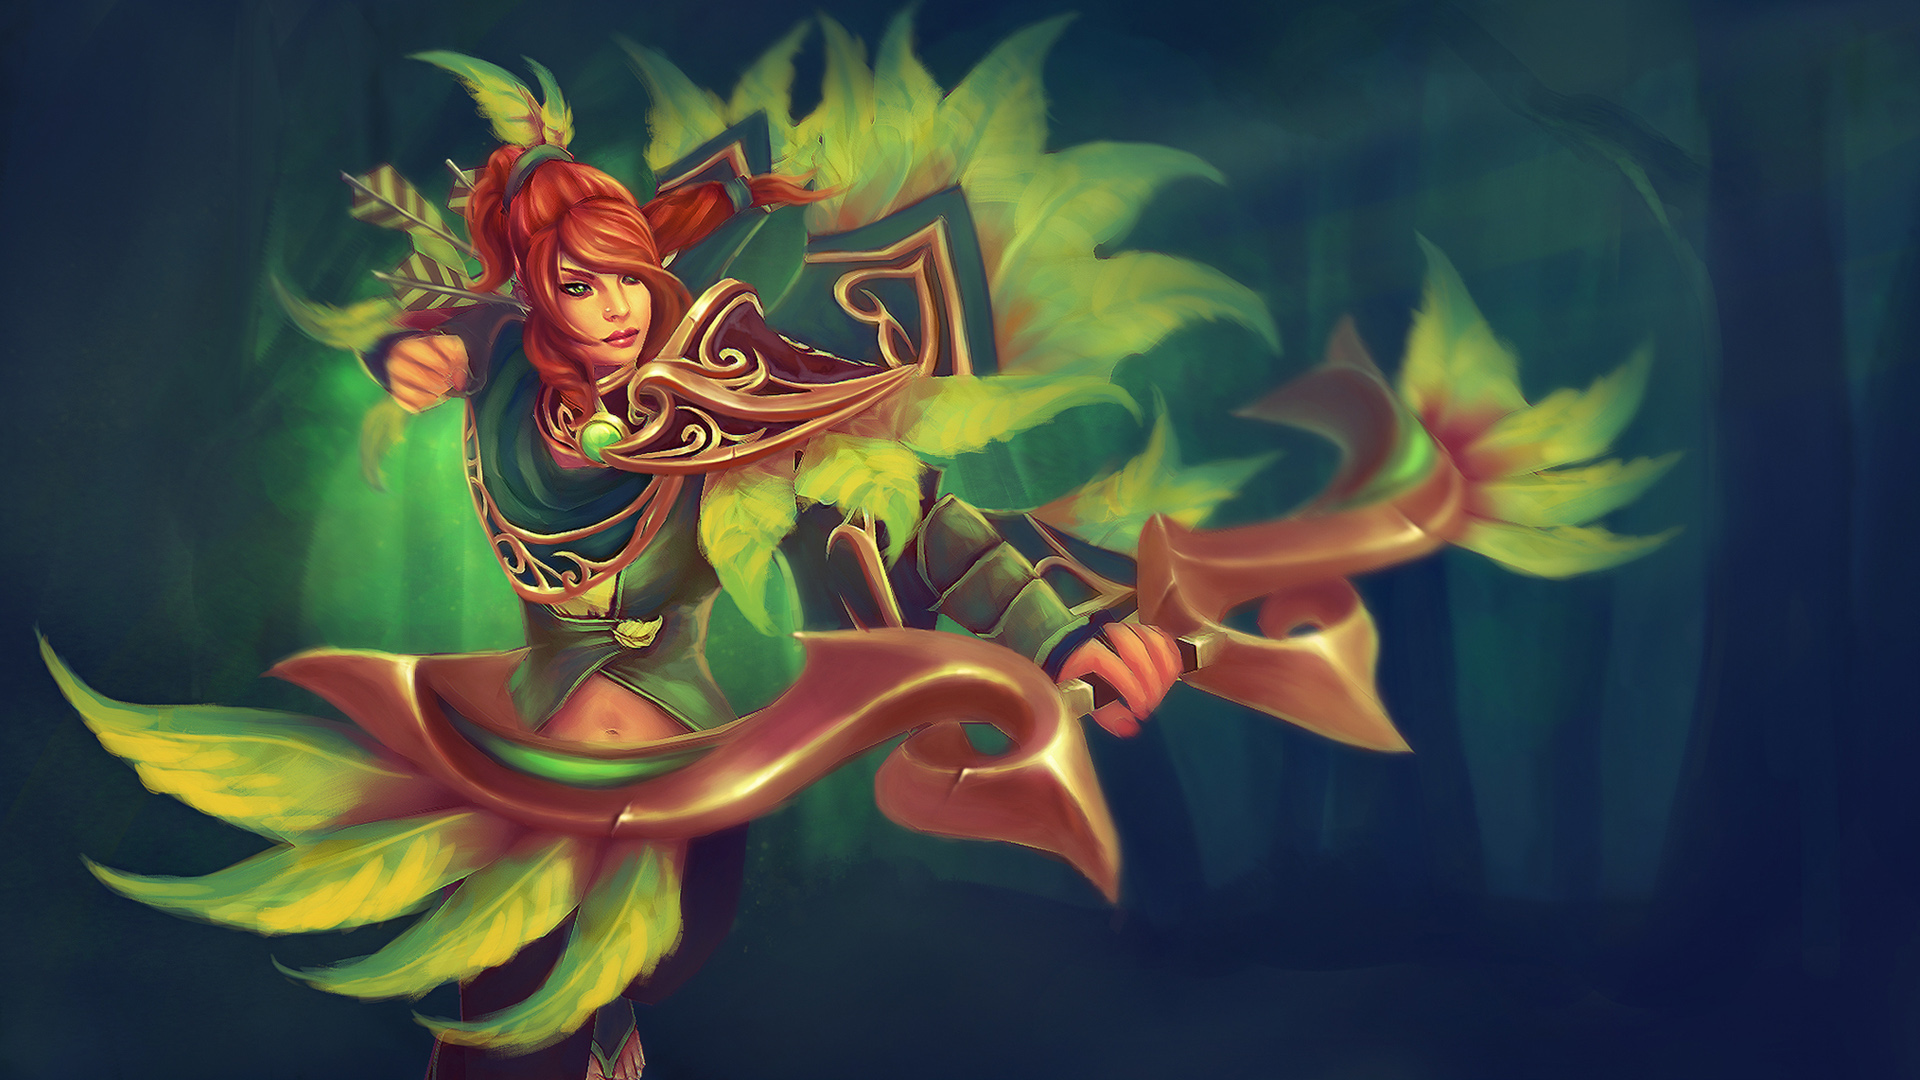 dota 2 windranger 2l wallpaper hd